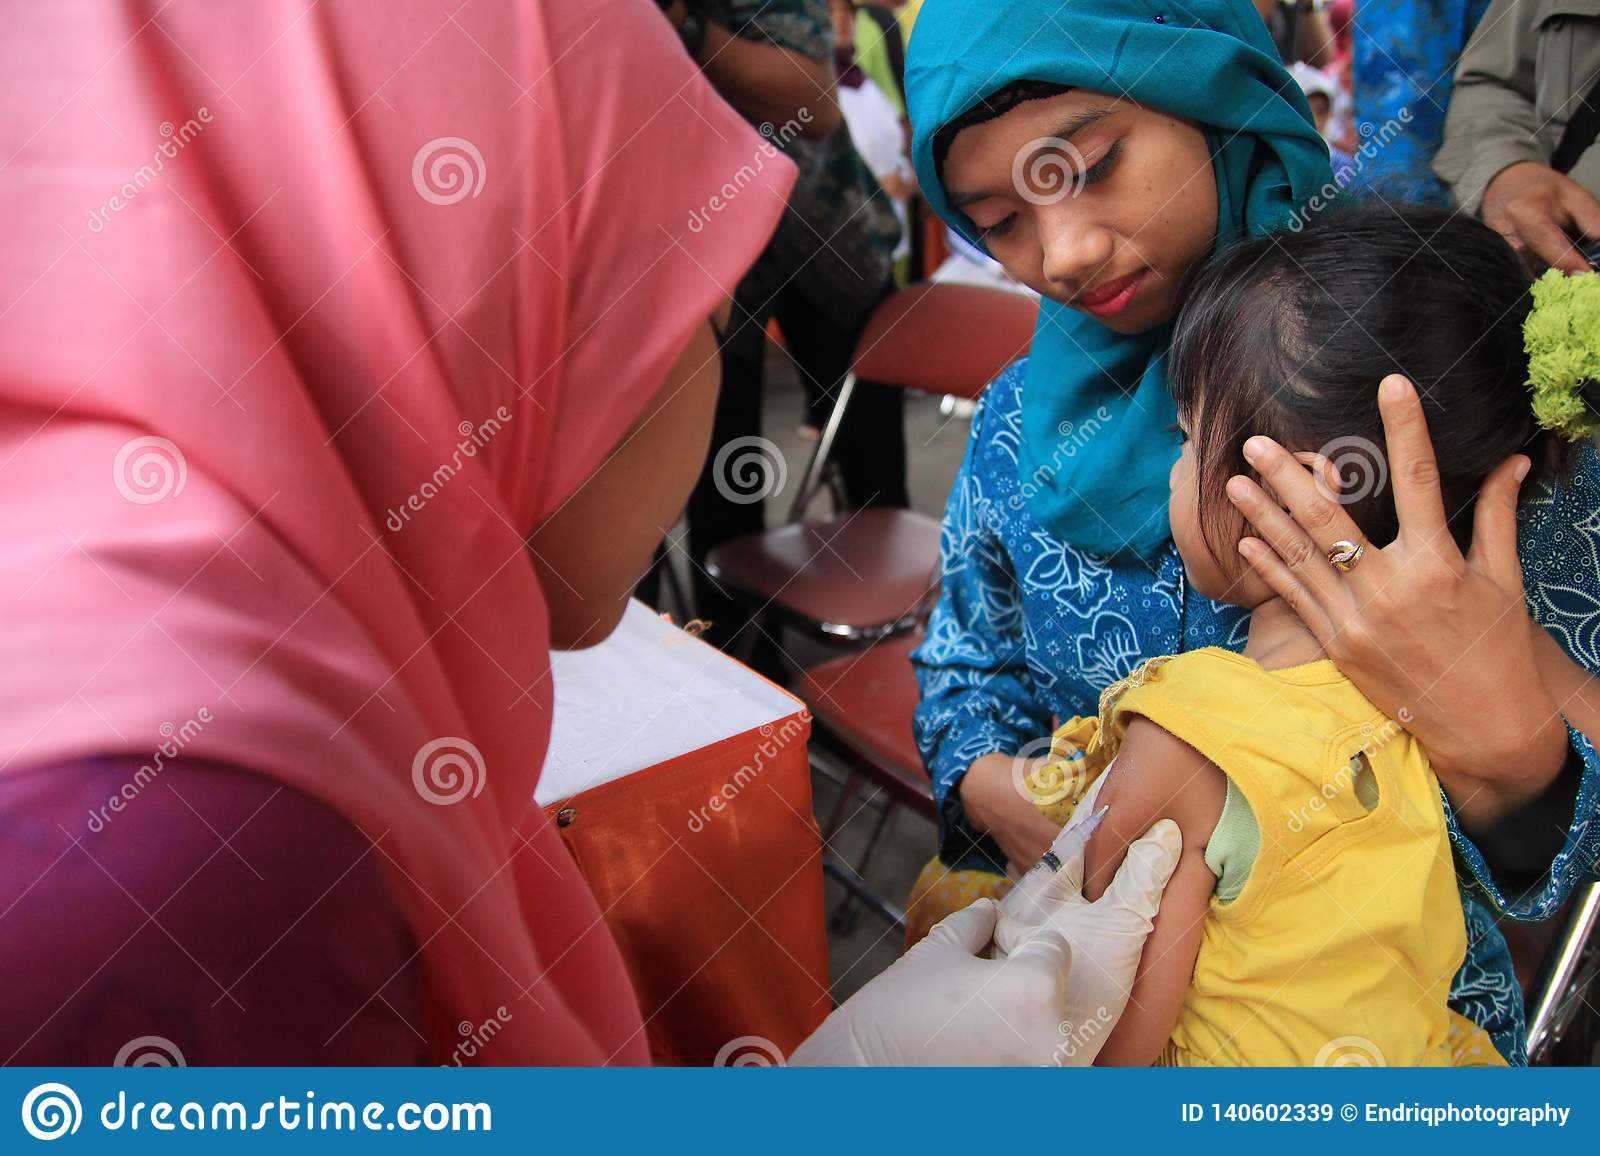 Surabaya indonesia, may 21, 2014. a health worker gave vaccinations to children